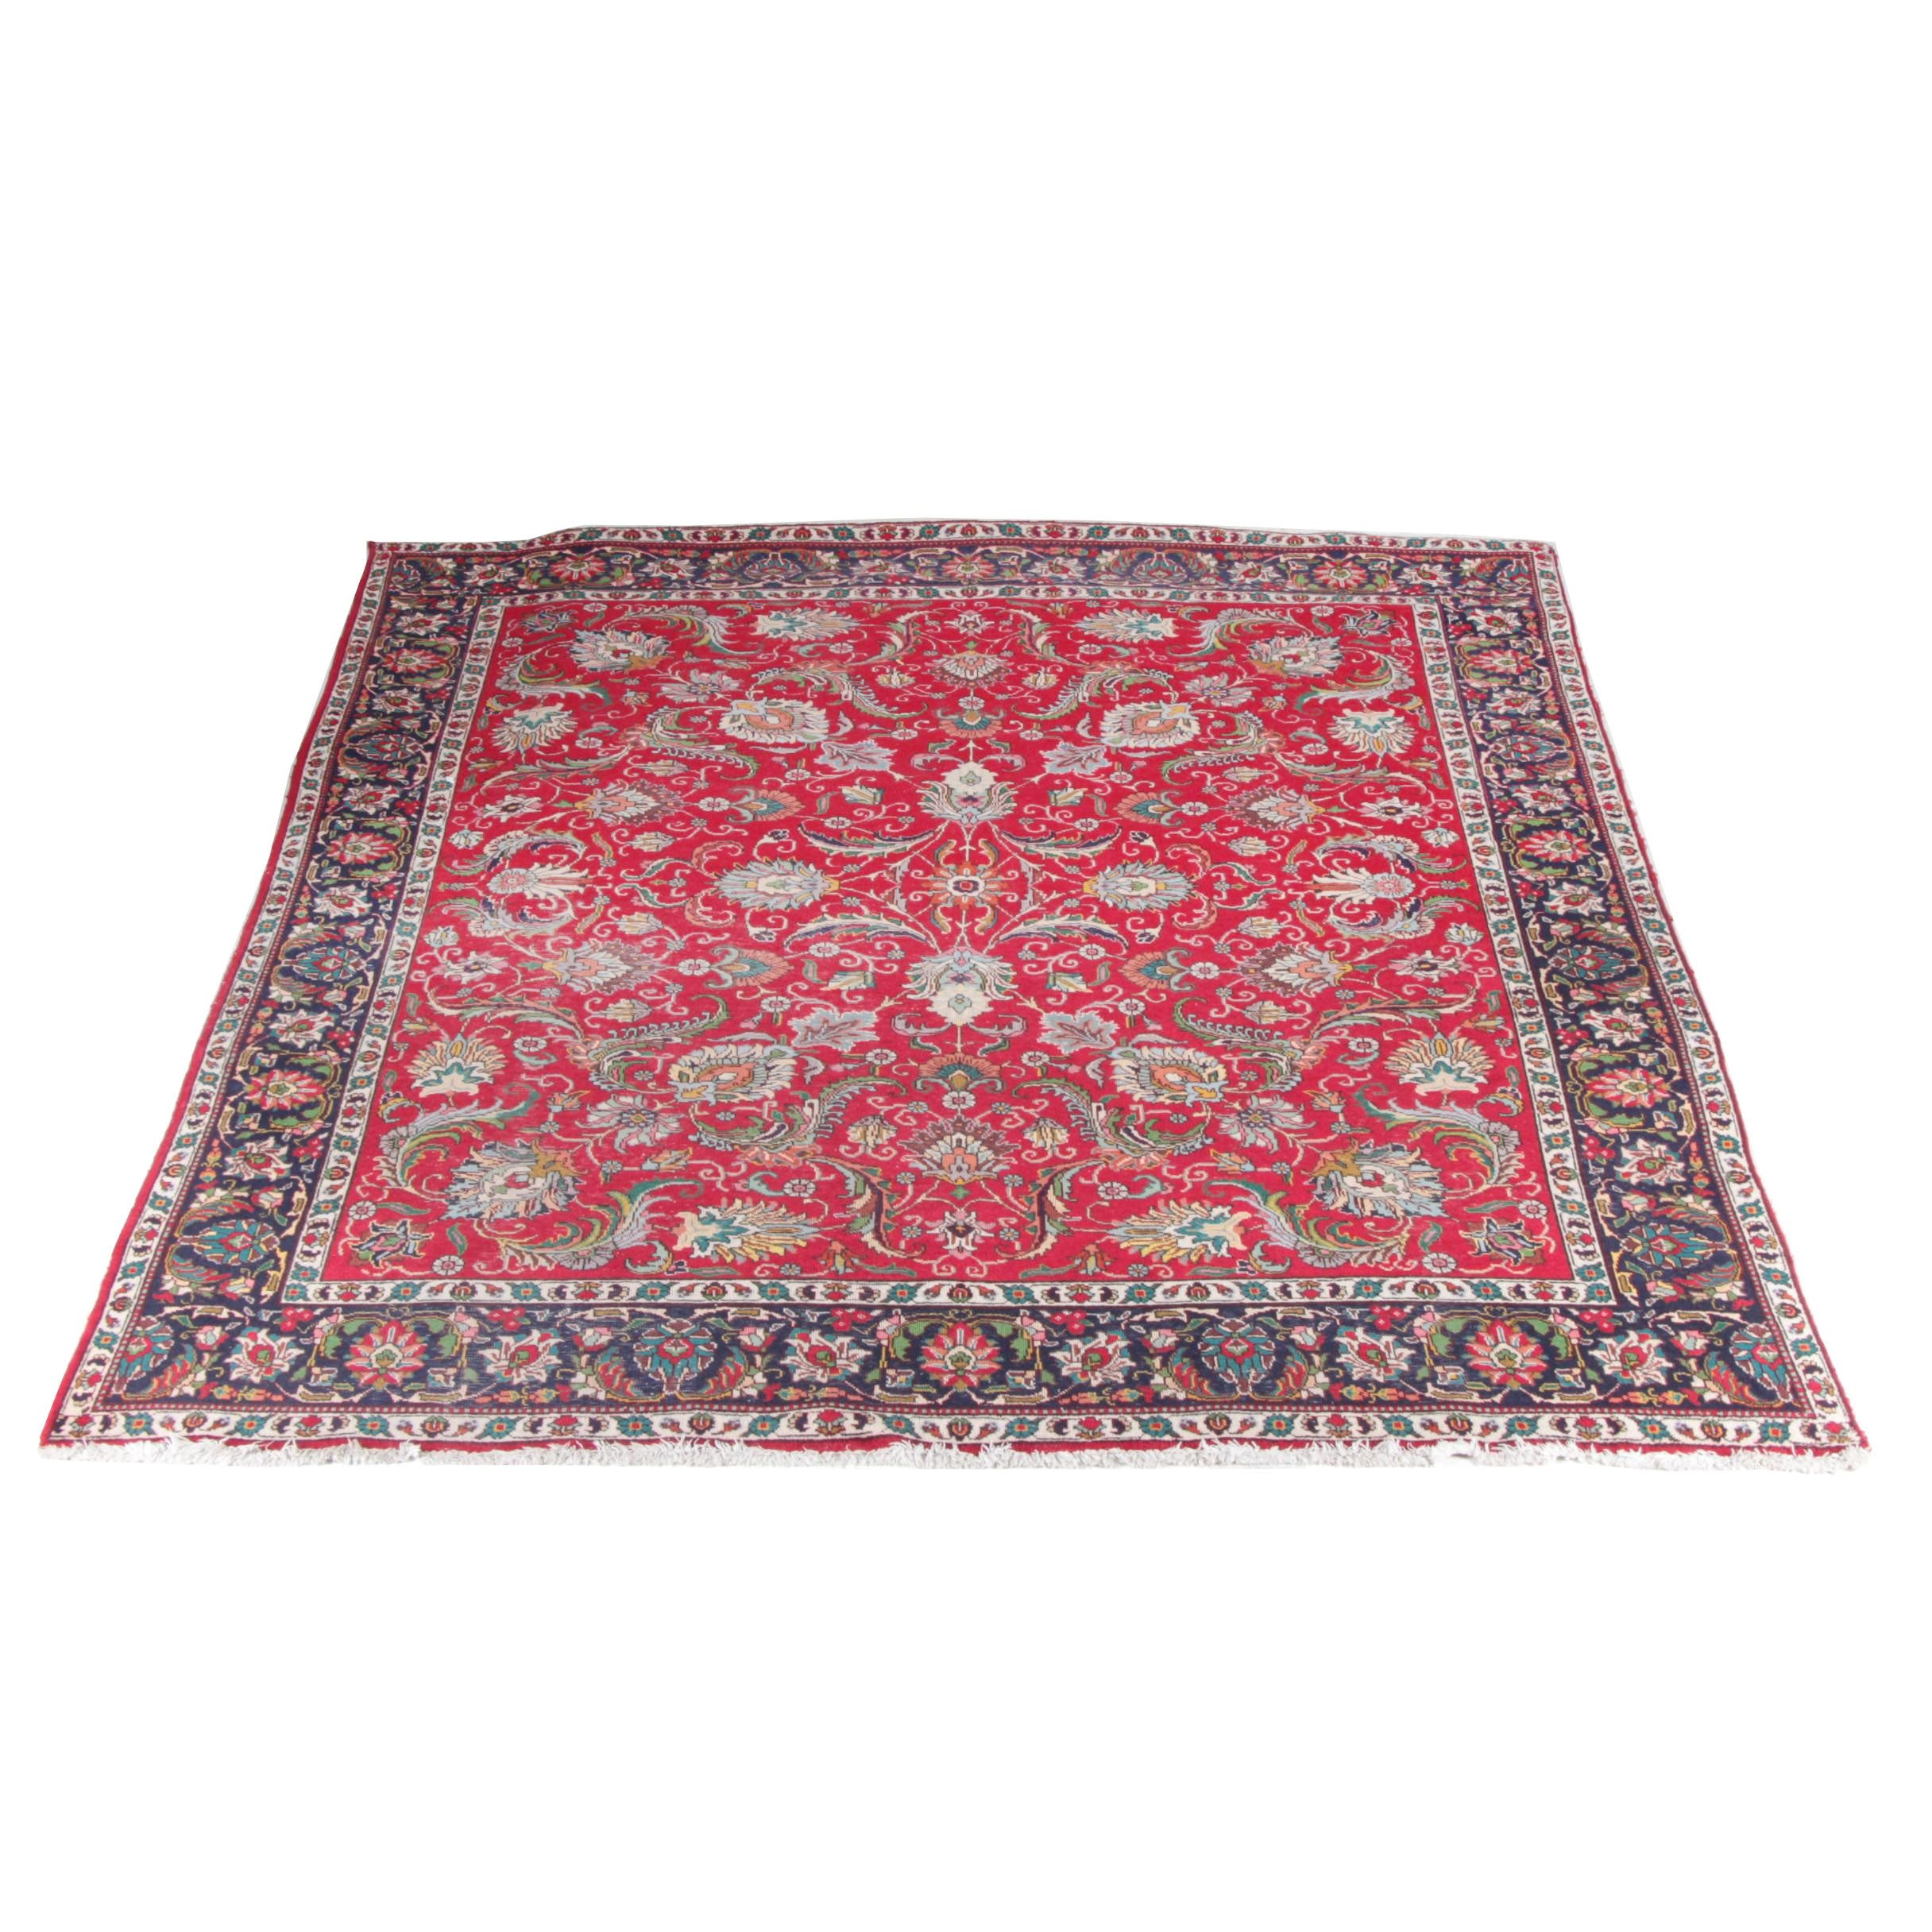 Hand-Knotted Romanian Wool Area Rug